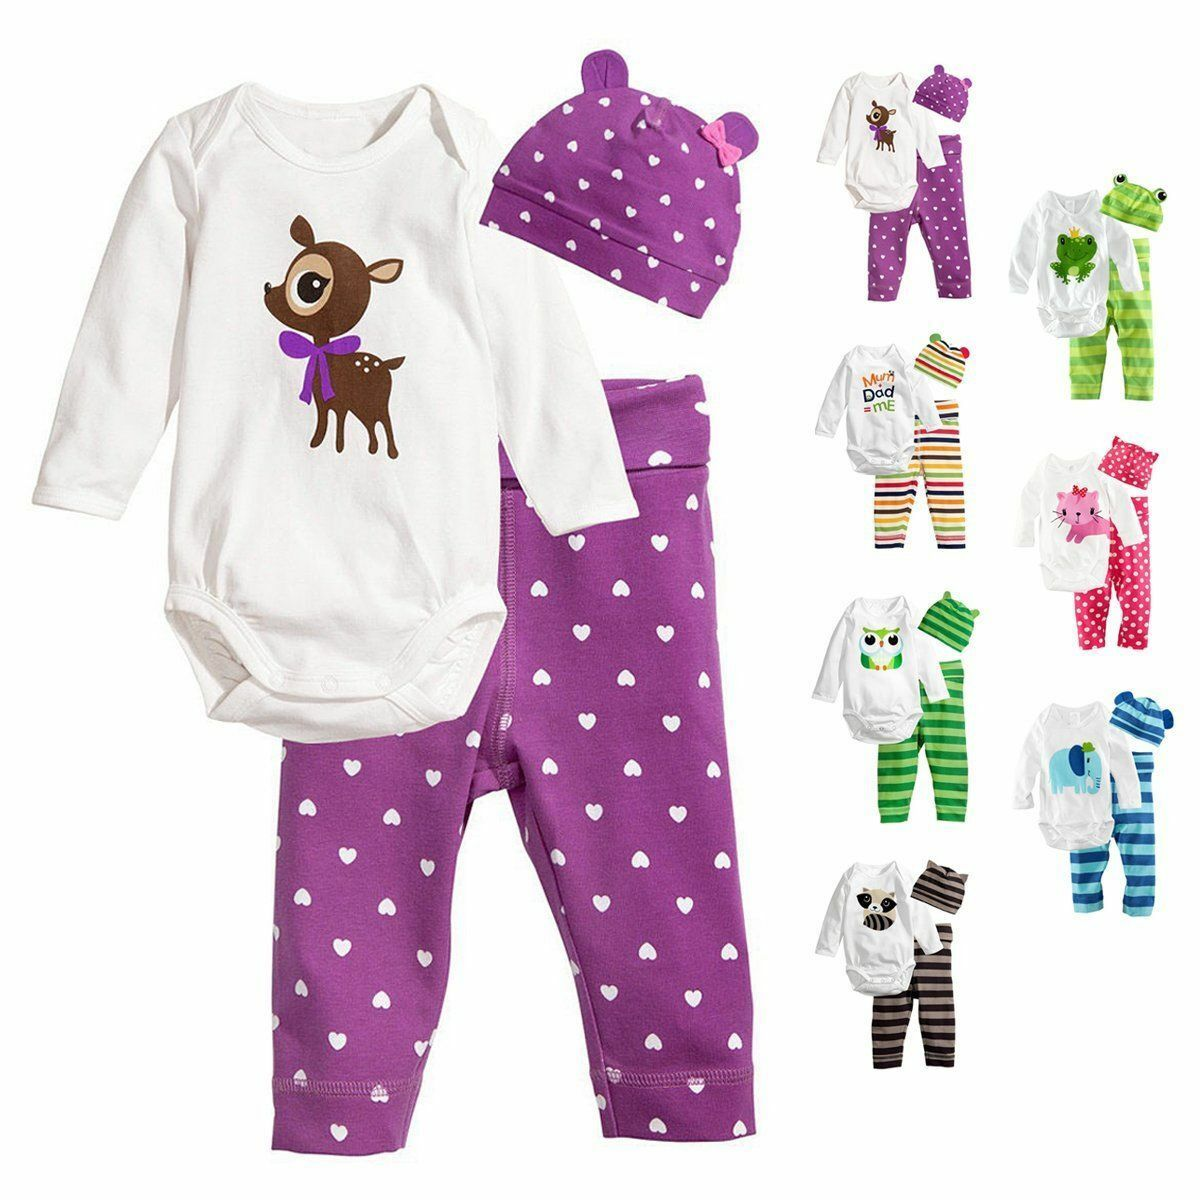 3tlg neugeborenes baby m dchen jungen top strampler lange hose hut outfits set ebay. Black Bedroom Furniture Sets. Home Design Ideas